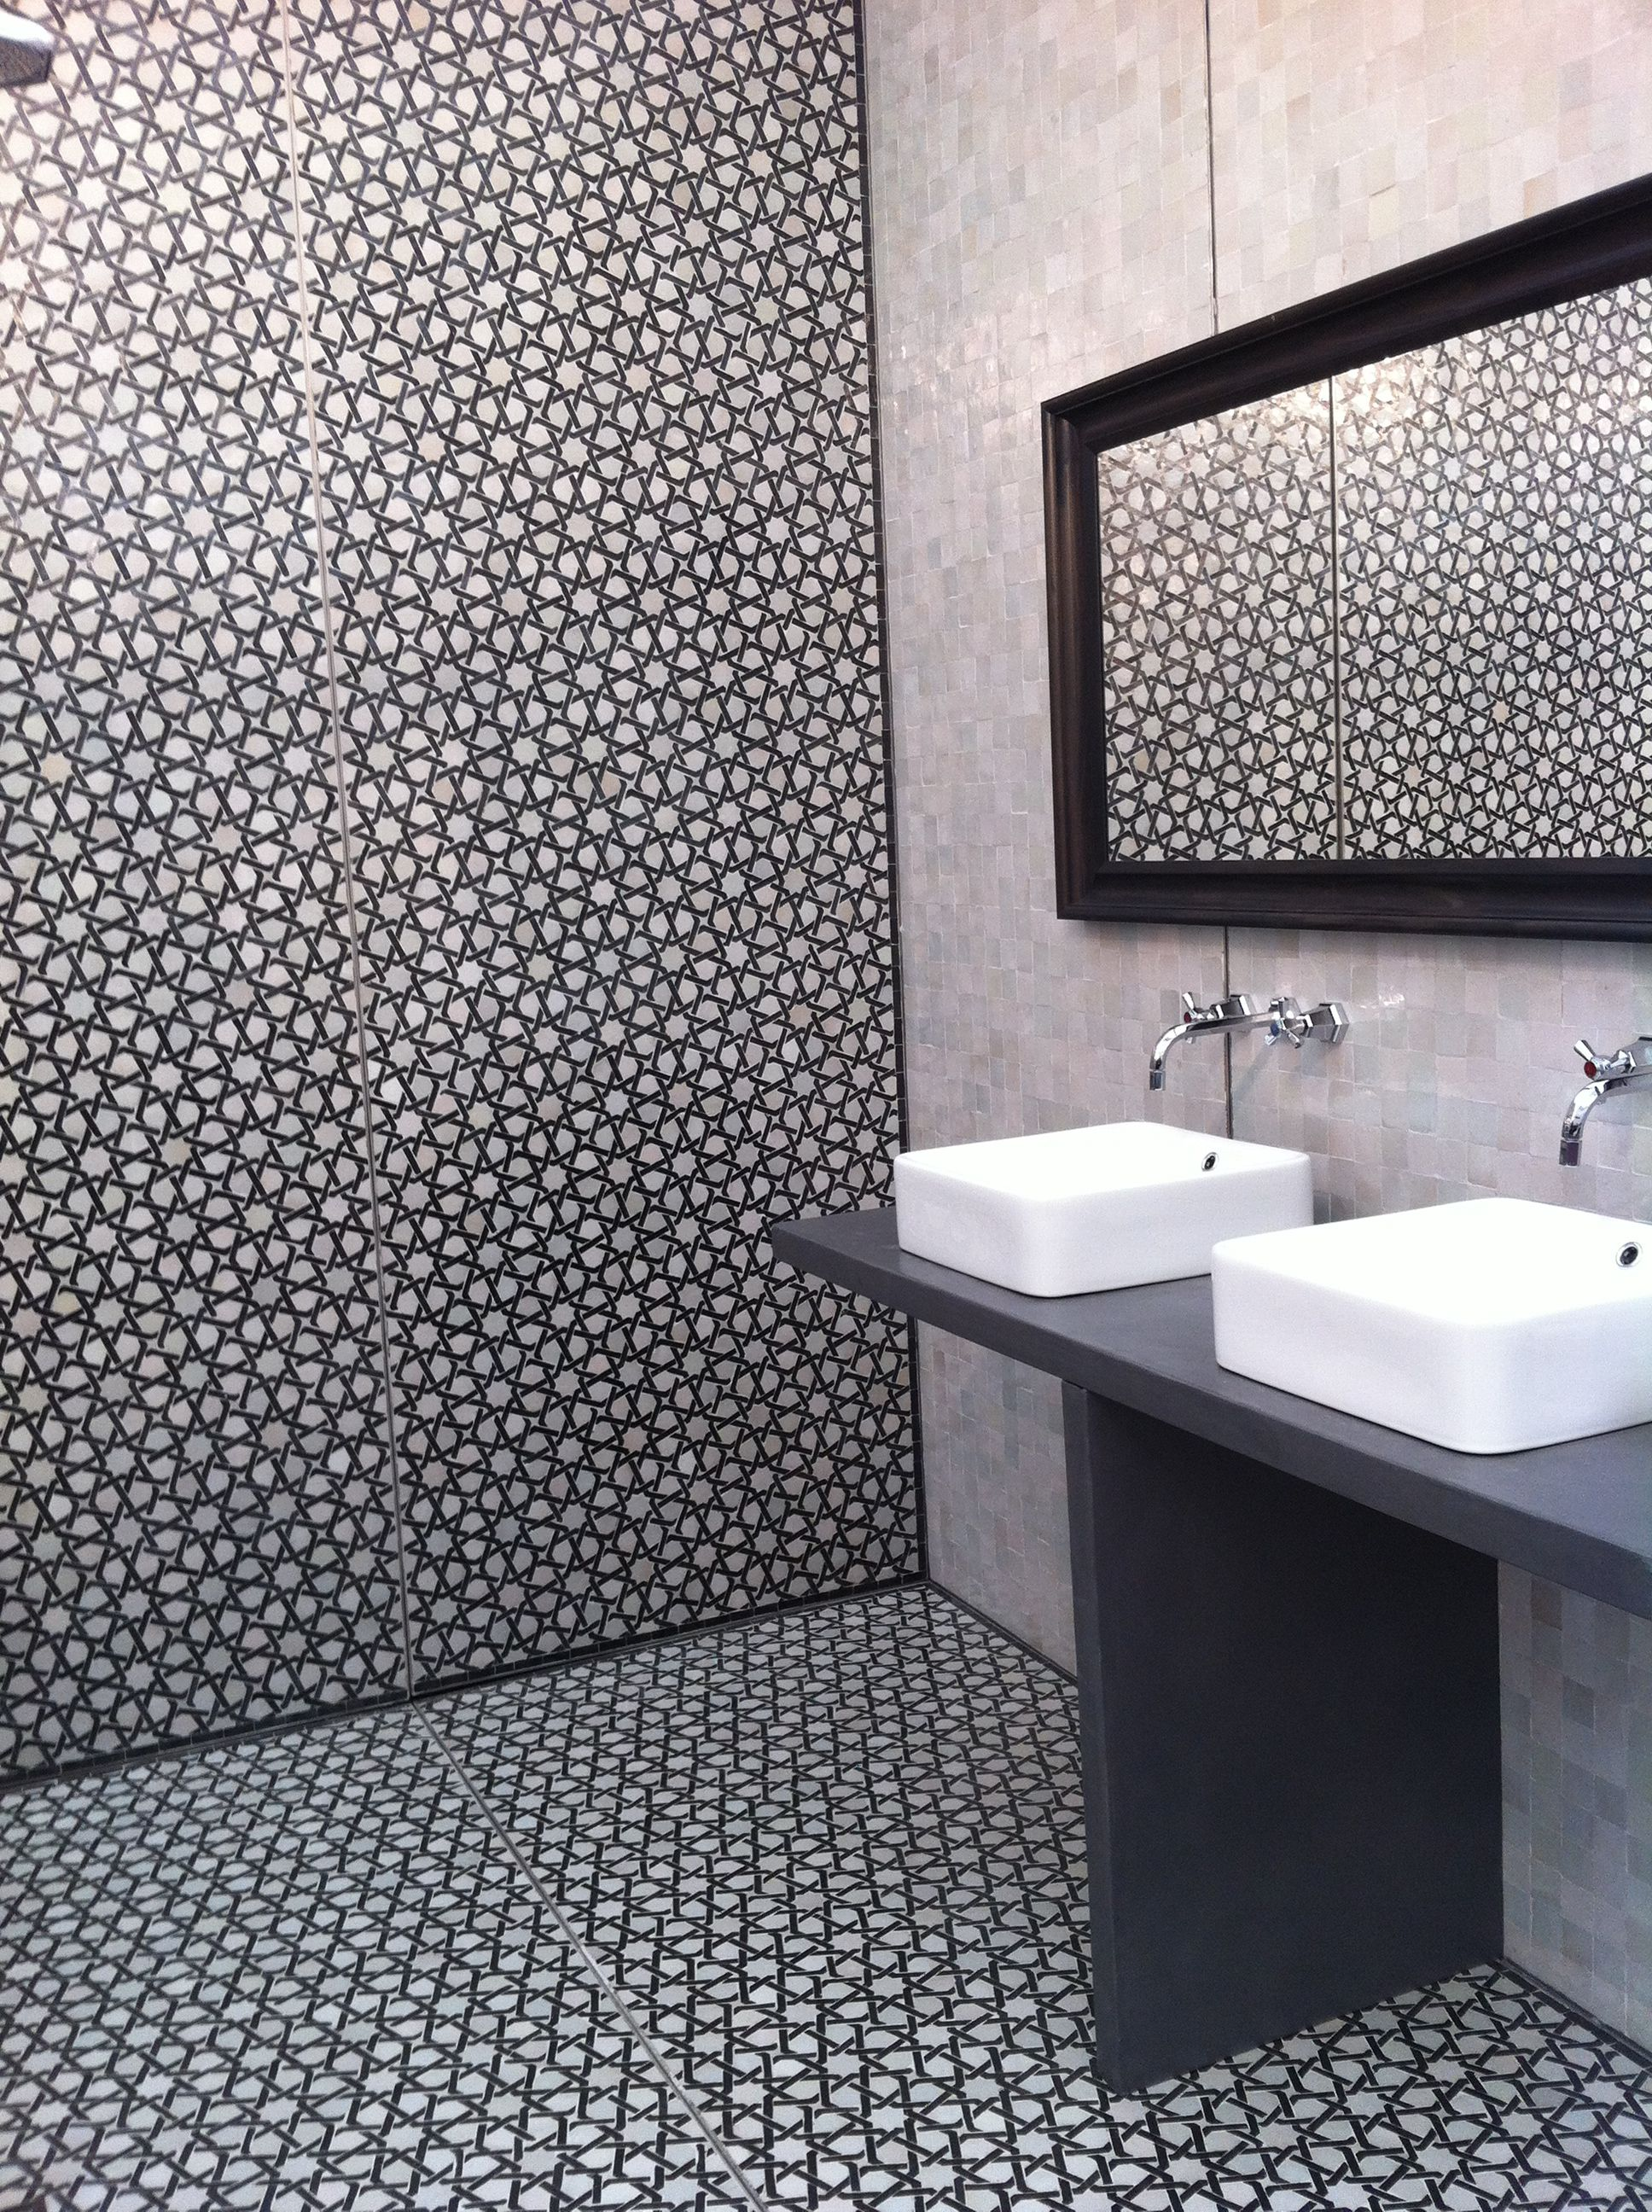 take these monochrome tiles and combine them